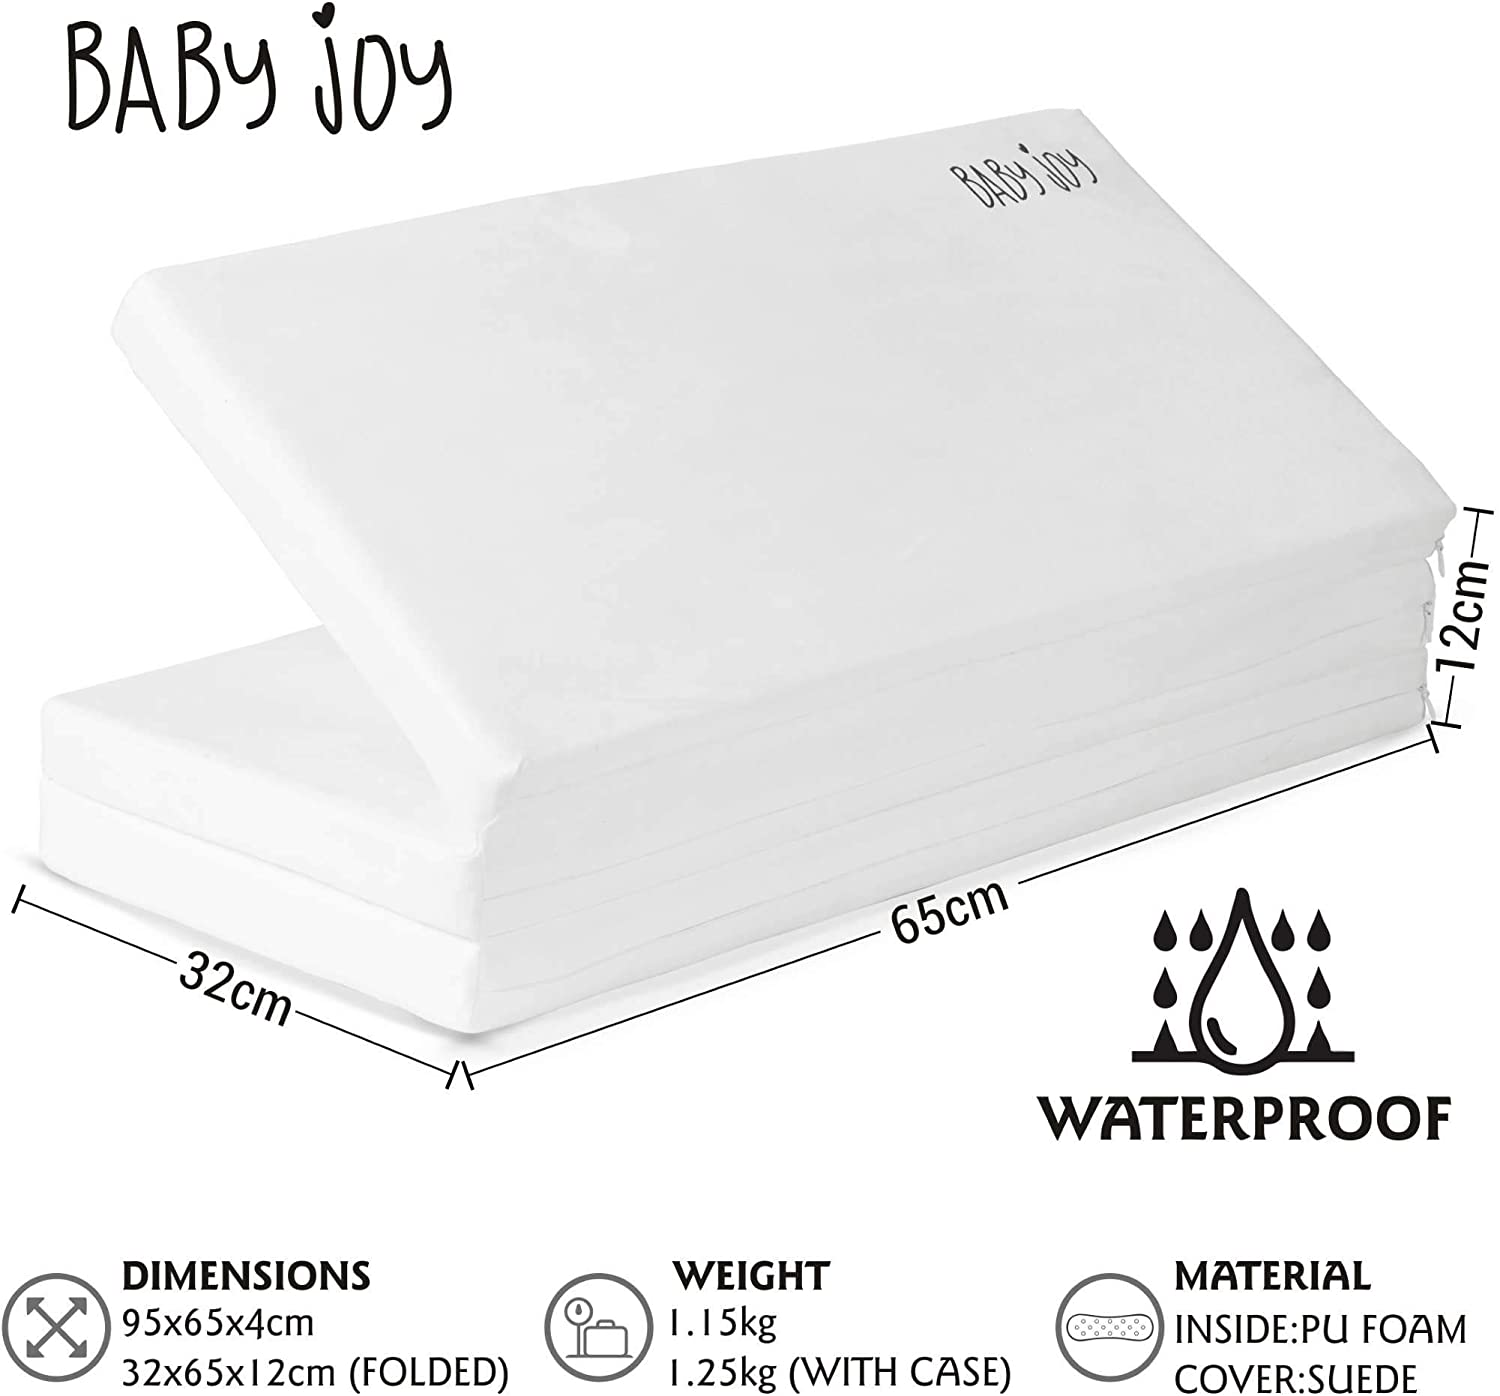 Red Kite /& Graco Travel Cots 95x65cm Baby Joy 100/% Waterproof Luxury Portable Folding Foam Child Travel Mattress Includes Carry Case and 2x Waterproof Fitted Sheets Perfect Fit For Medium Baby Joy